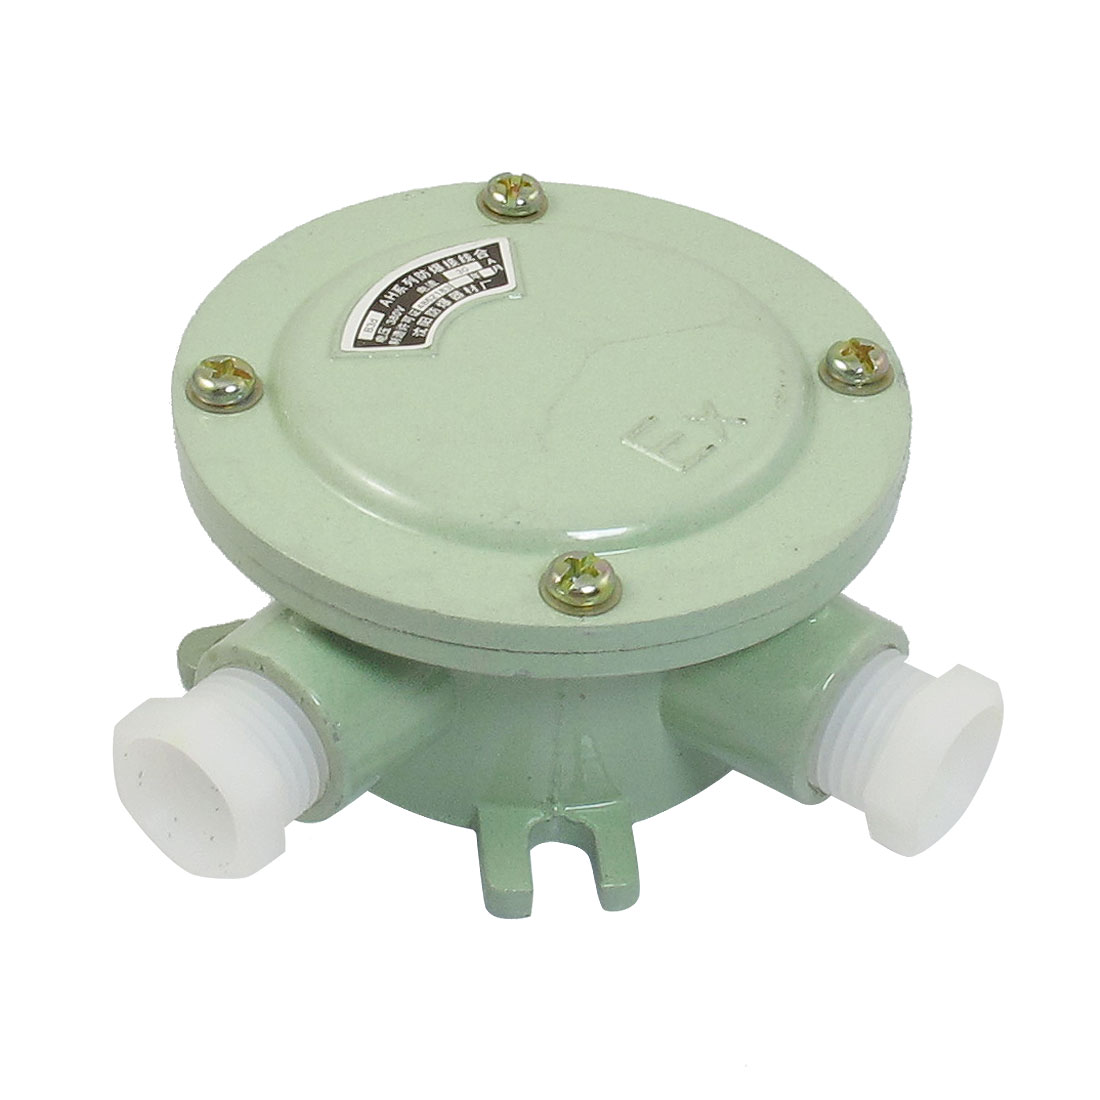 "AC 380V 30A 1/2""PT Two Hole Explosion-proof Junction Box Ceumk"